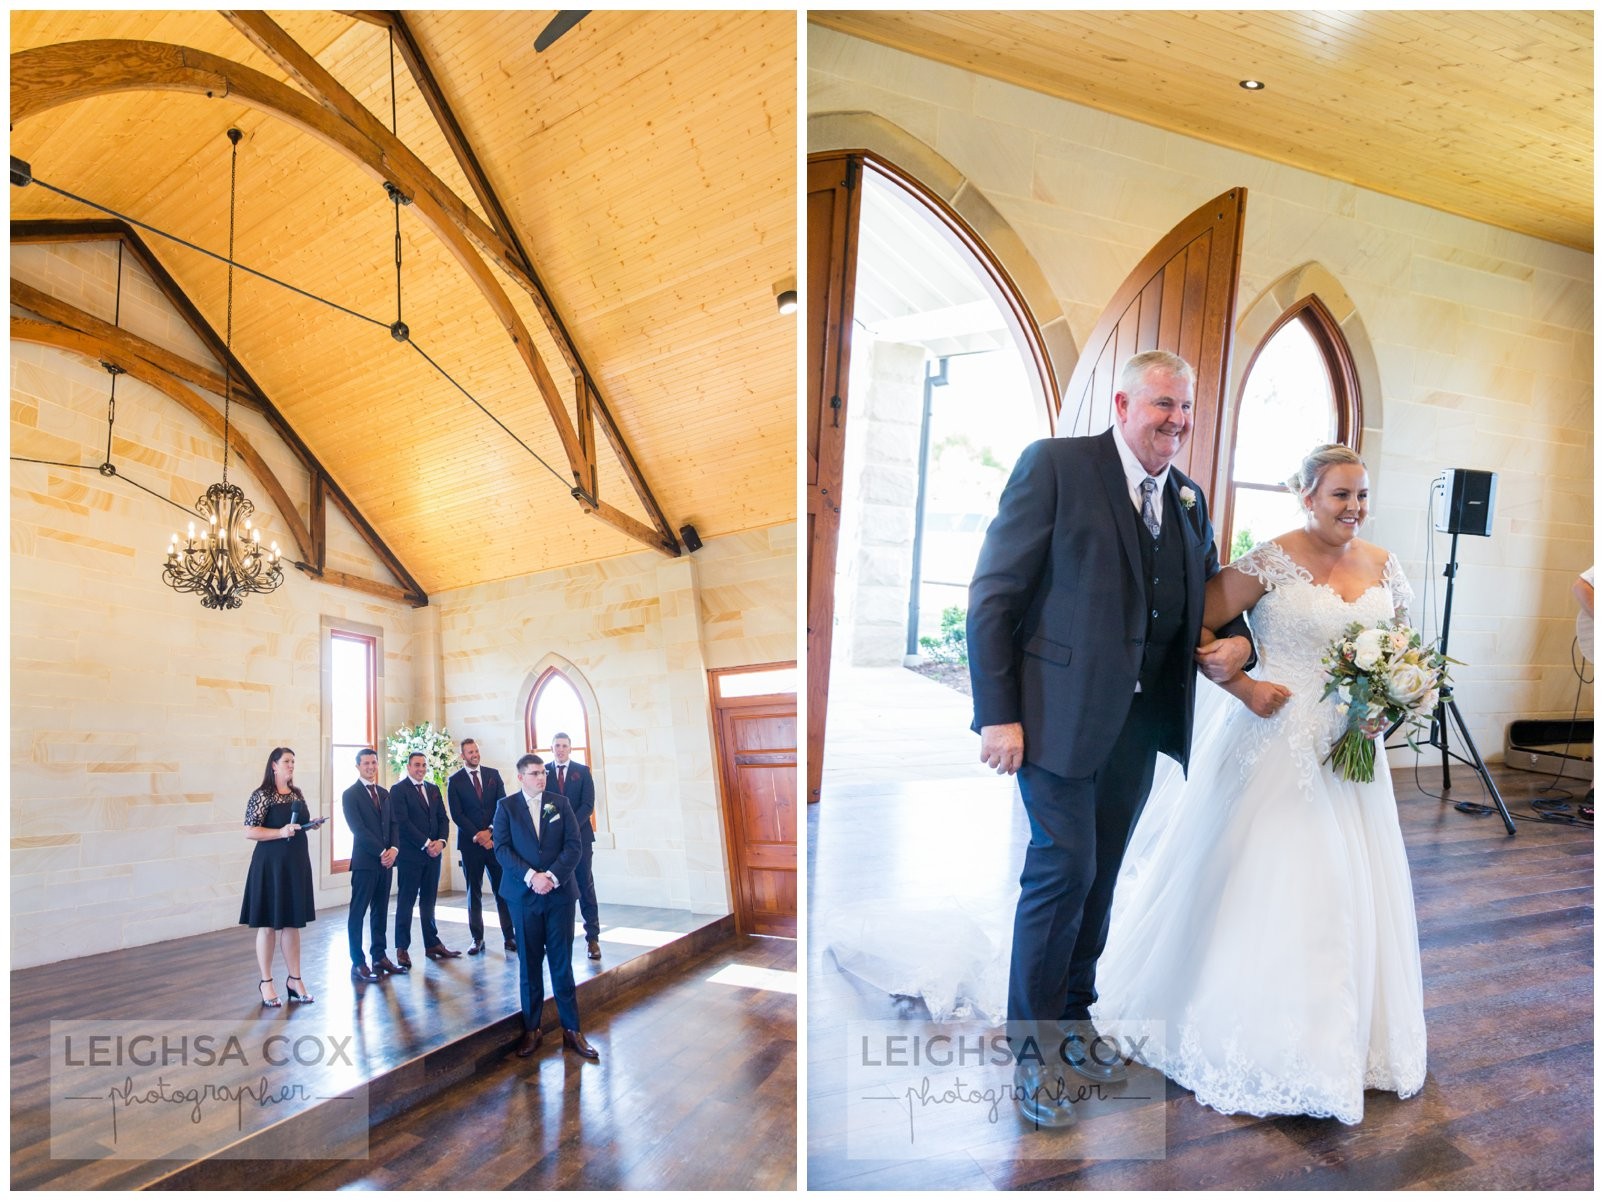 Peterson House Wedding